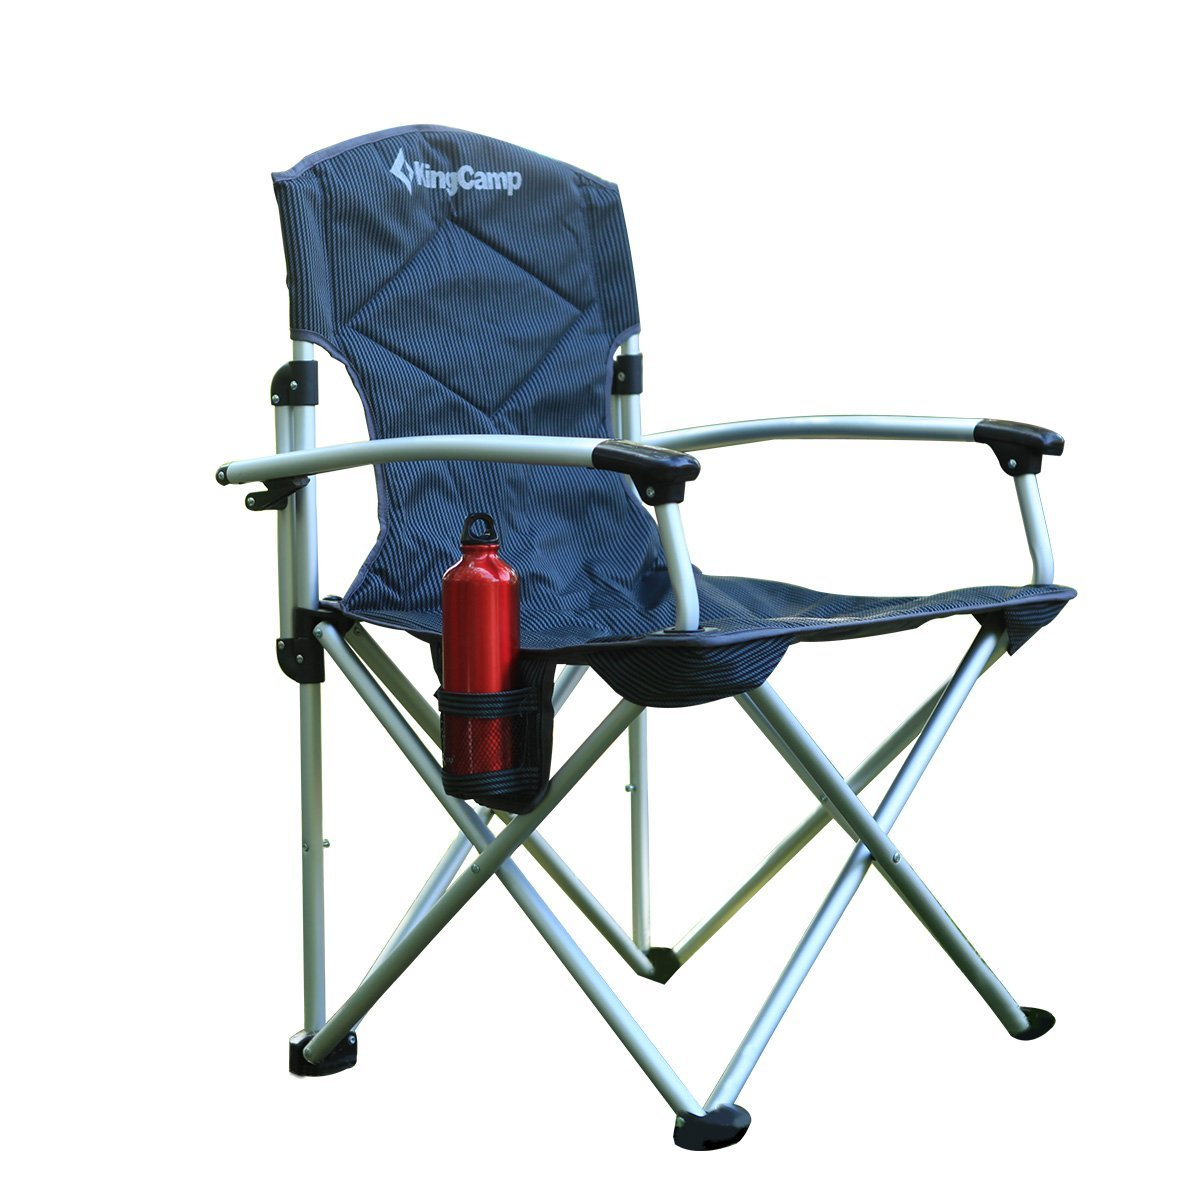 Travel Chair Kingcamp Aluminum Arms Folding Outdoor Camping Travel